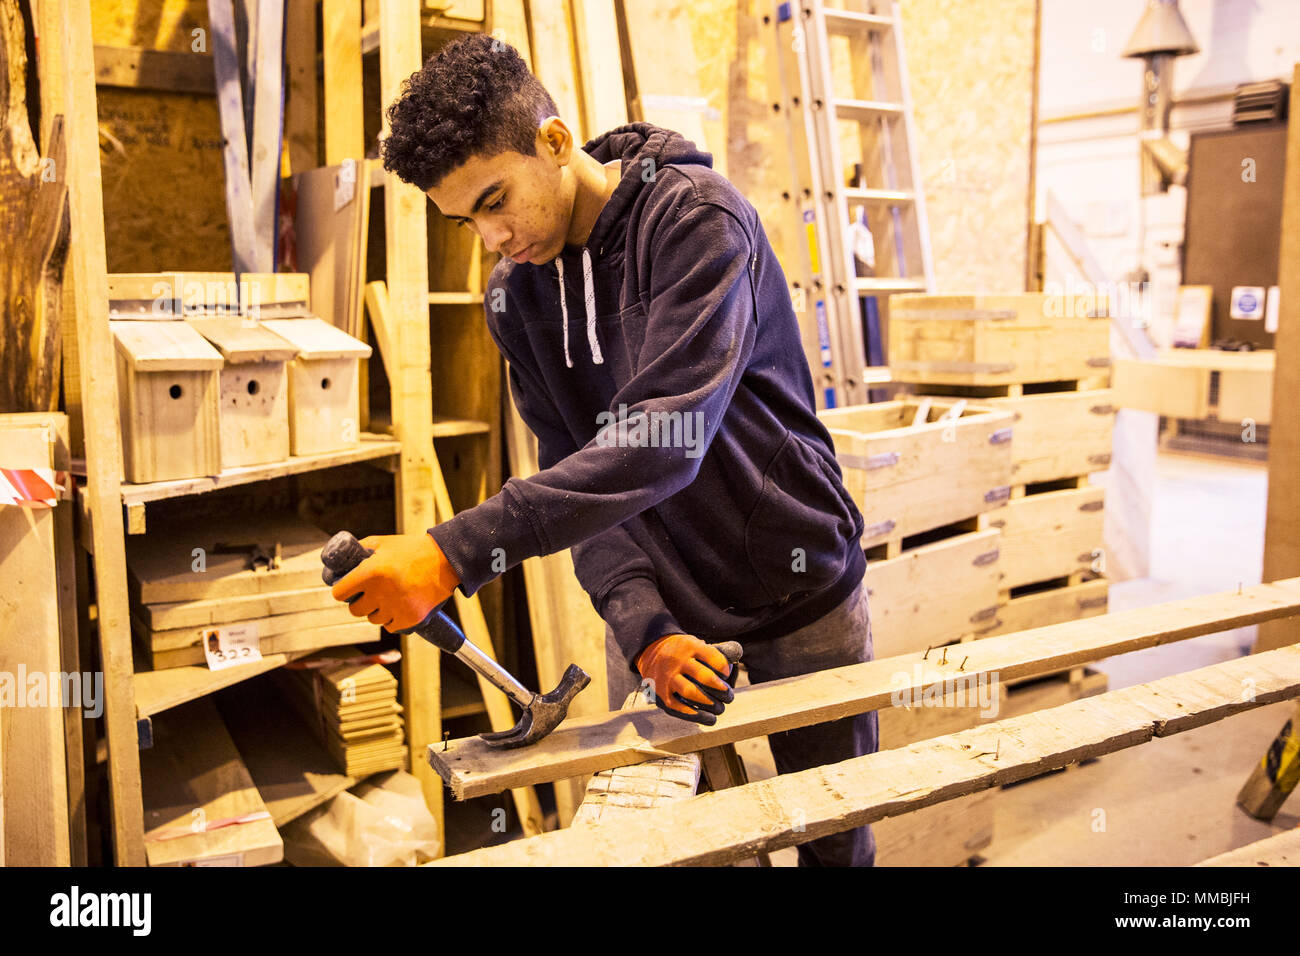 Young man wearing work gloves standing in warehouse, removing rusty nails from recycled wooden planks using hammer. - Stock Image